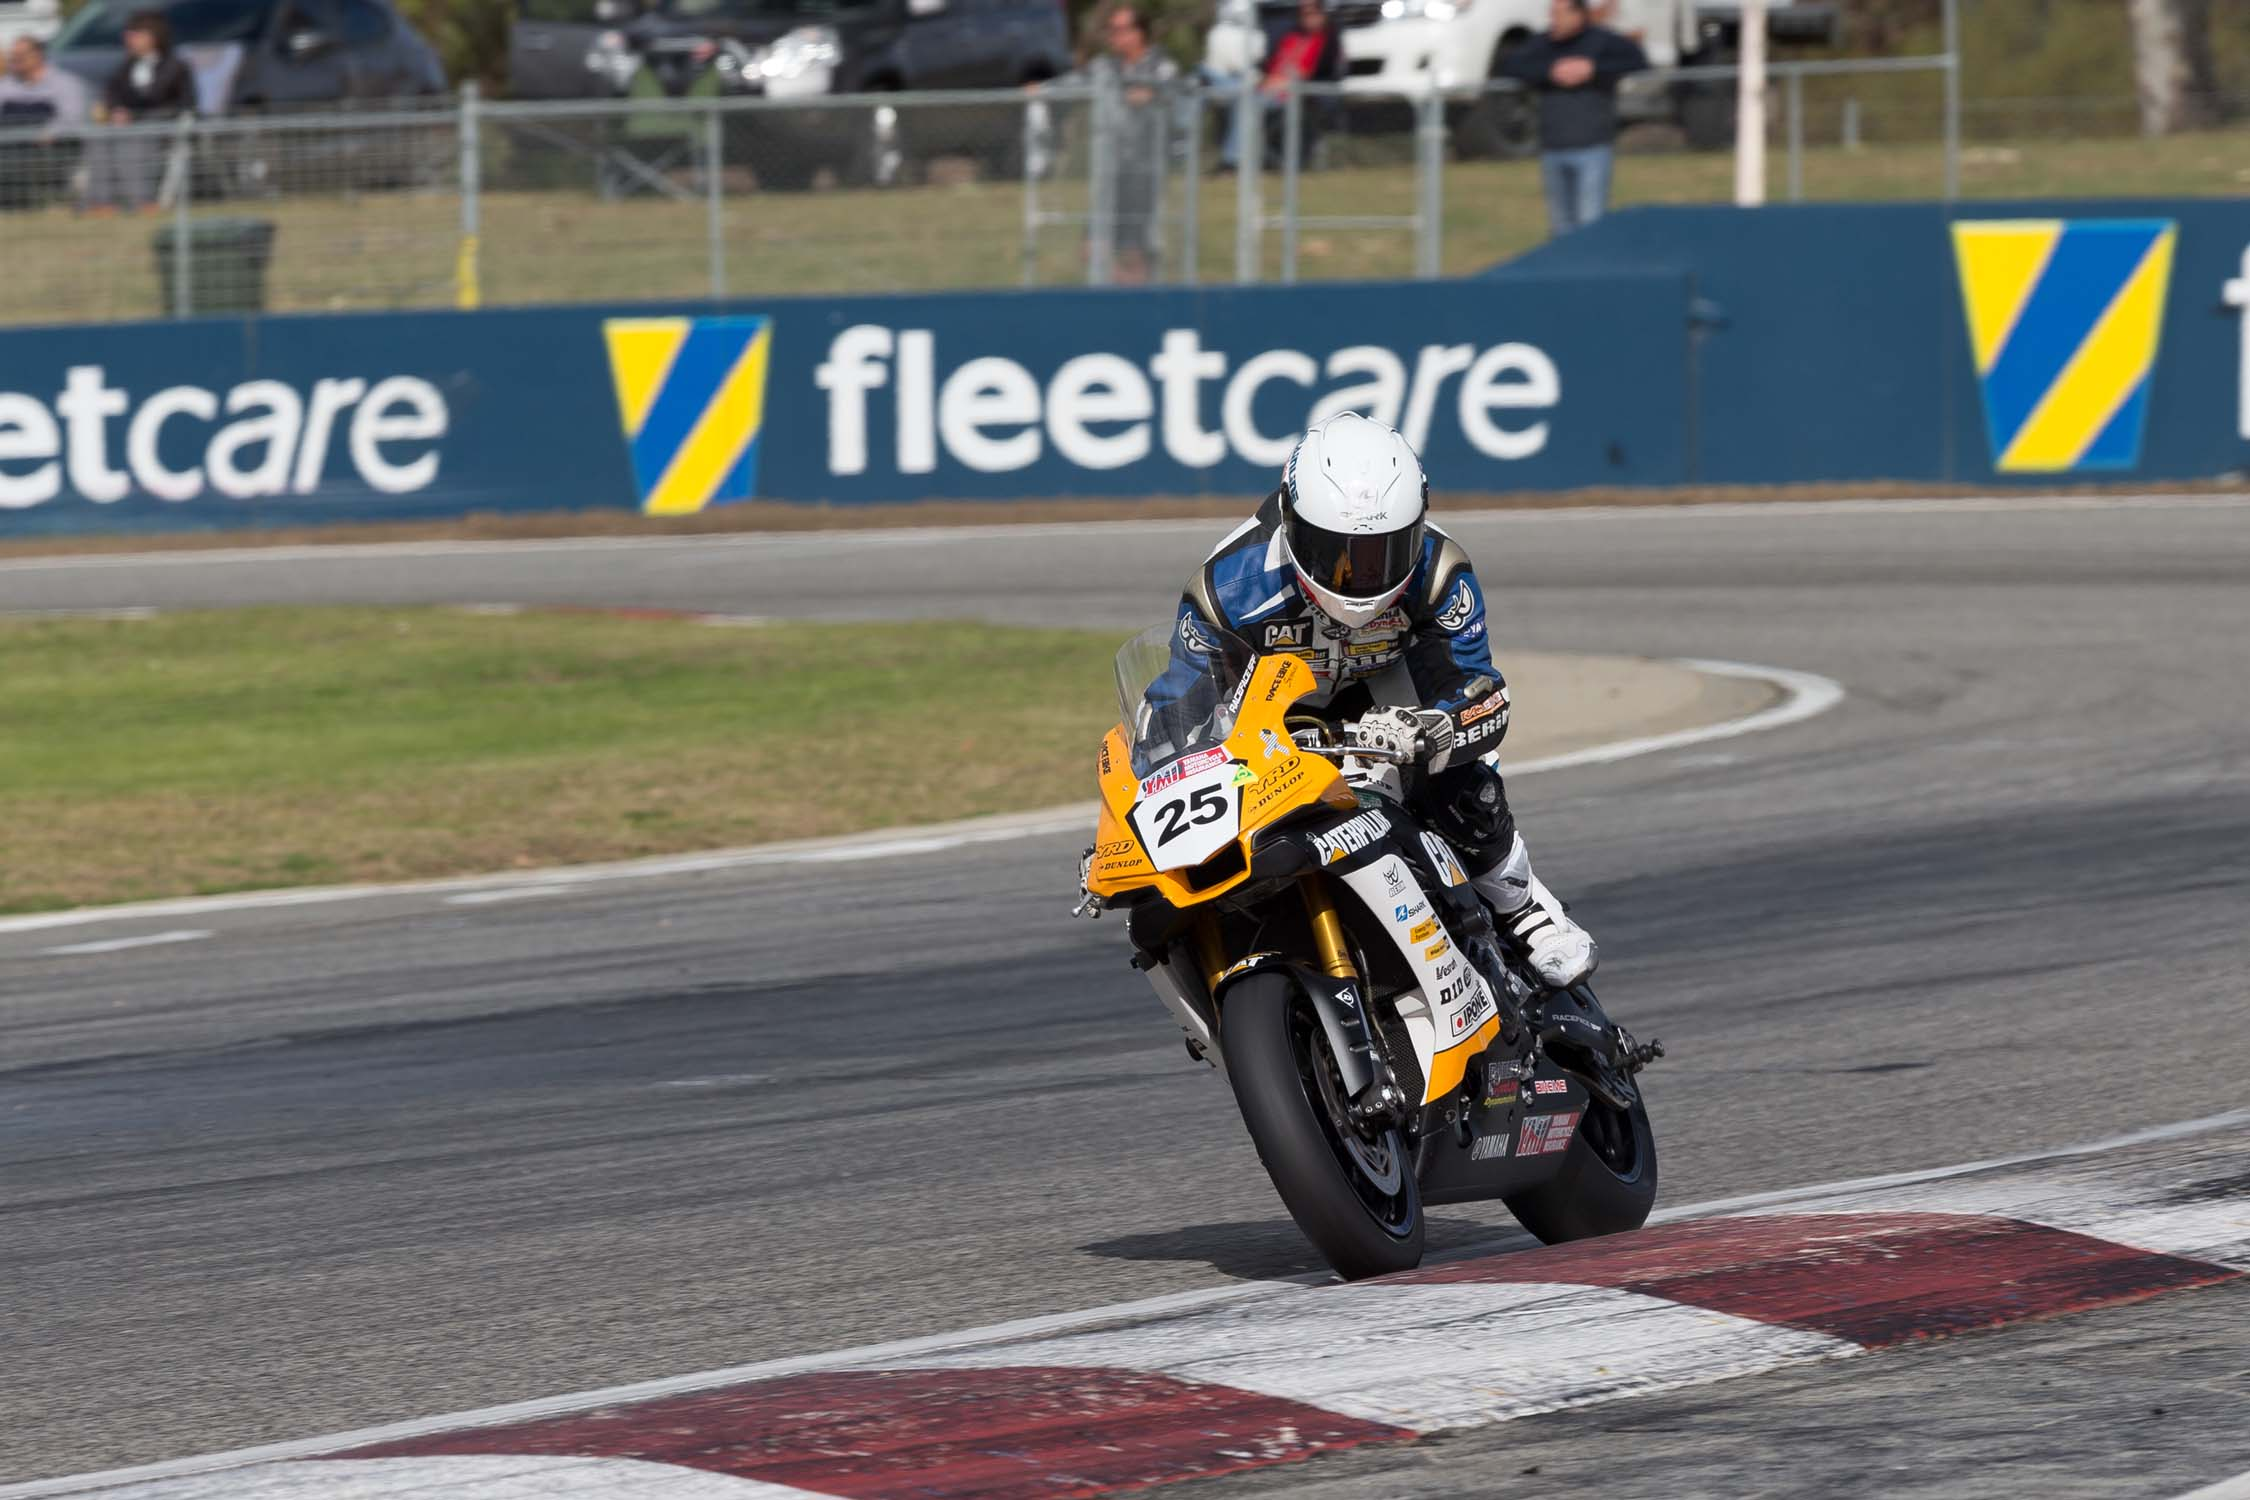 round 4 barbagallo raceway asbk gallery saturday professional academic money our online here custom research paper edited by assisting students through experienced open and skilled team of write my